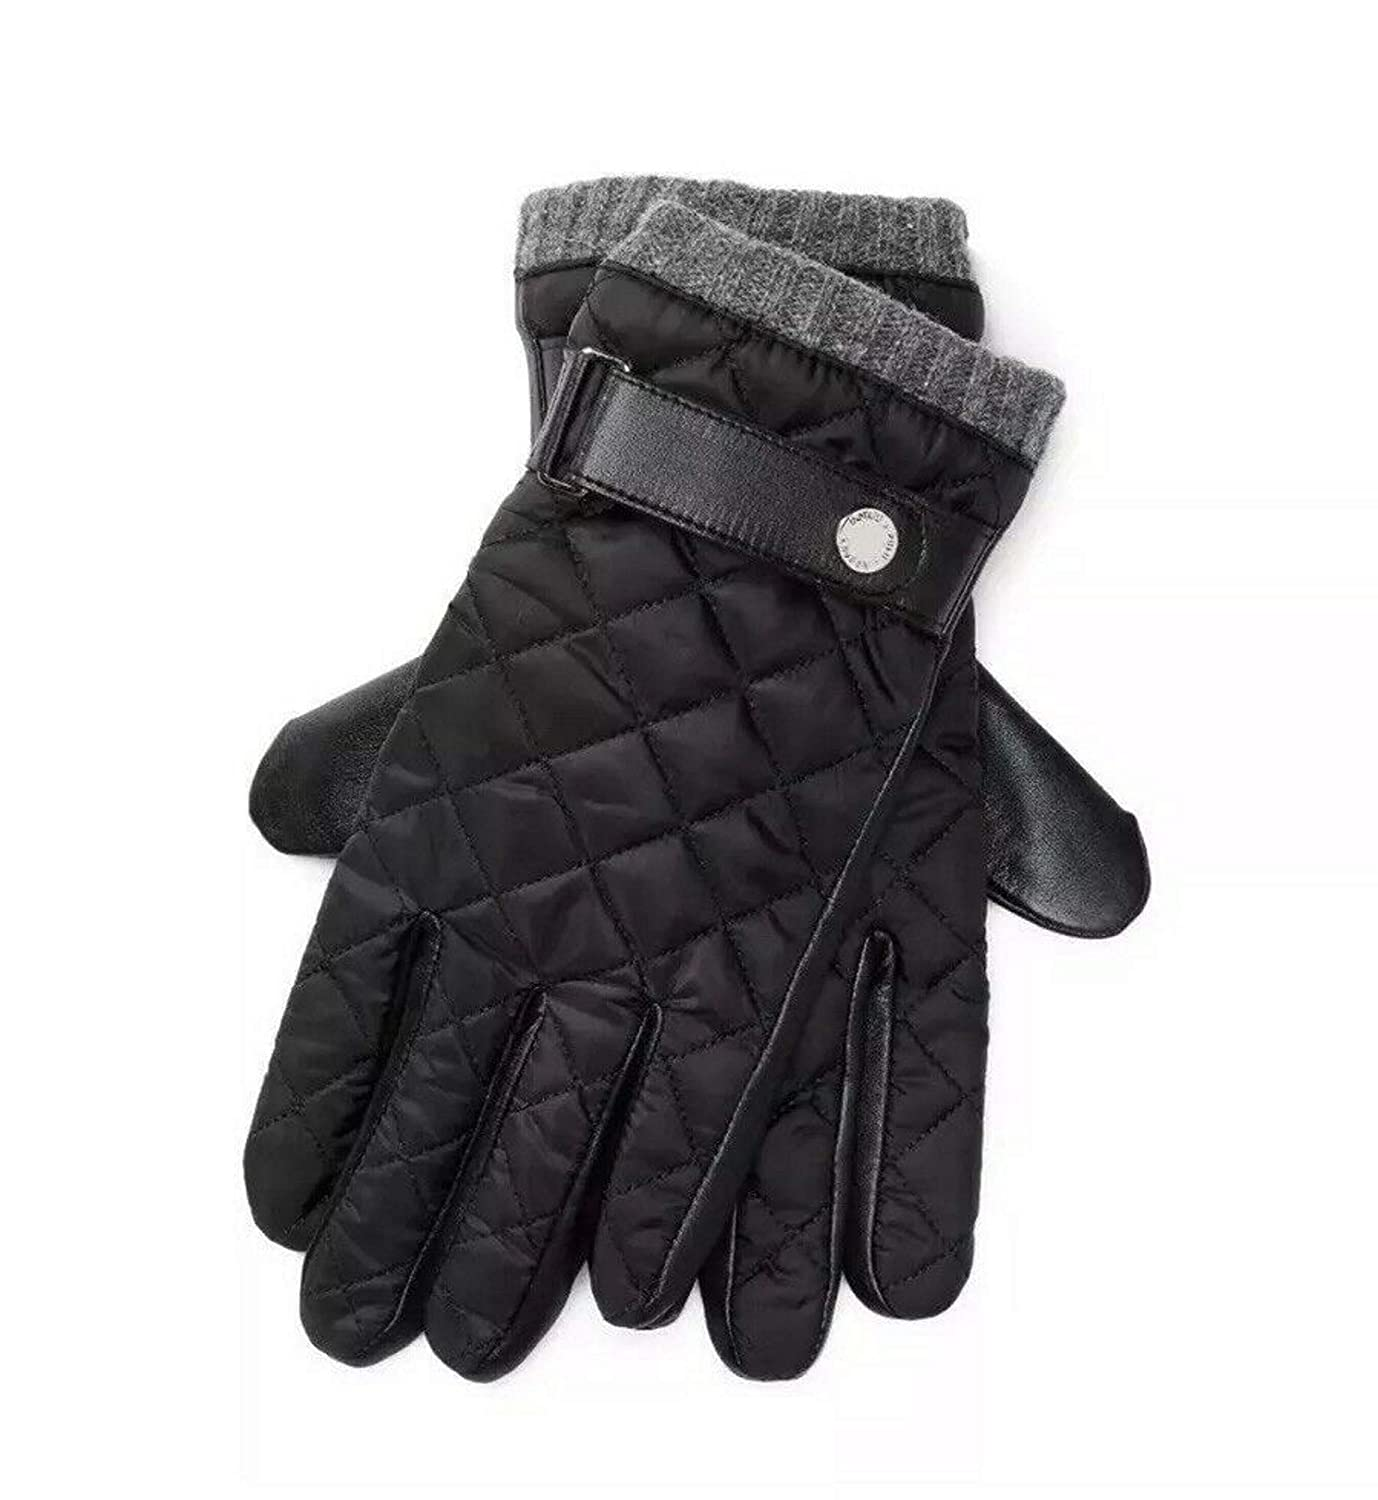 Polo Quilted Lauren Glove Ralph Leather L Men's 354qcRAjL